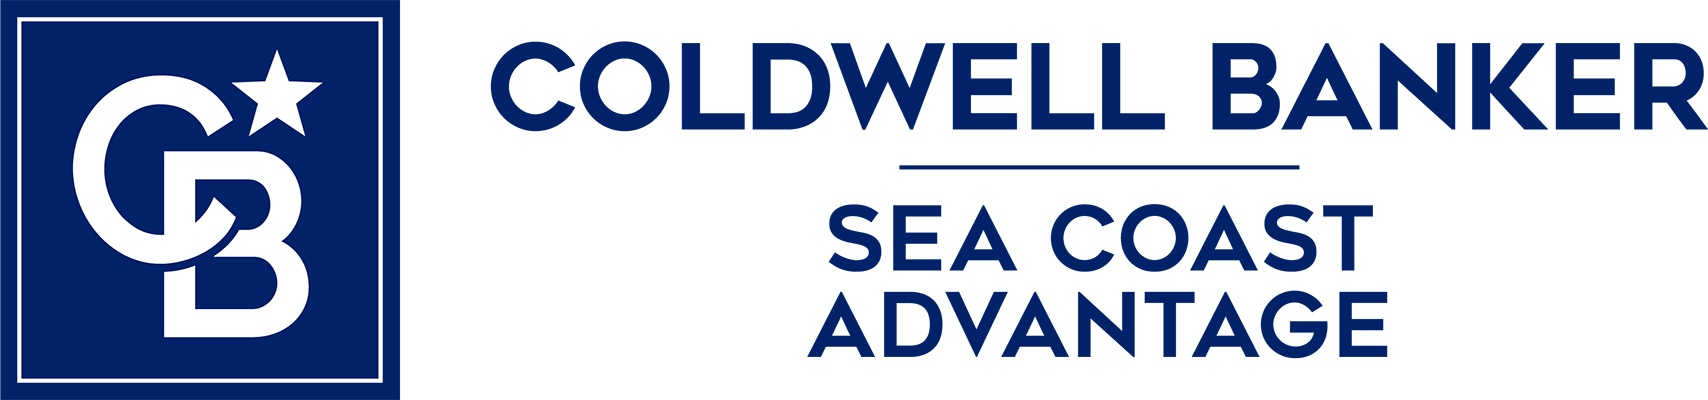 Debi Byrd - Coldwell Banker Sea Coast Advantage Realty Logo